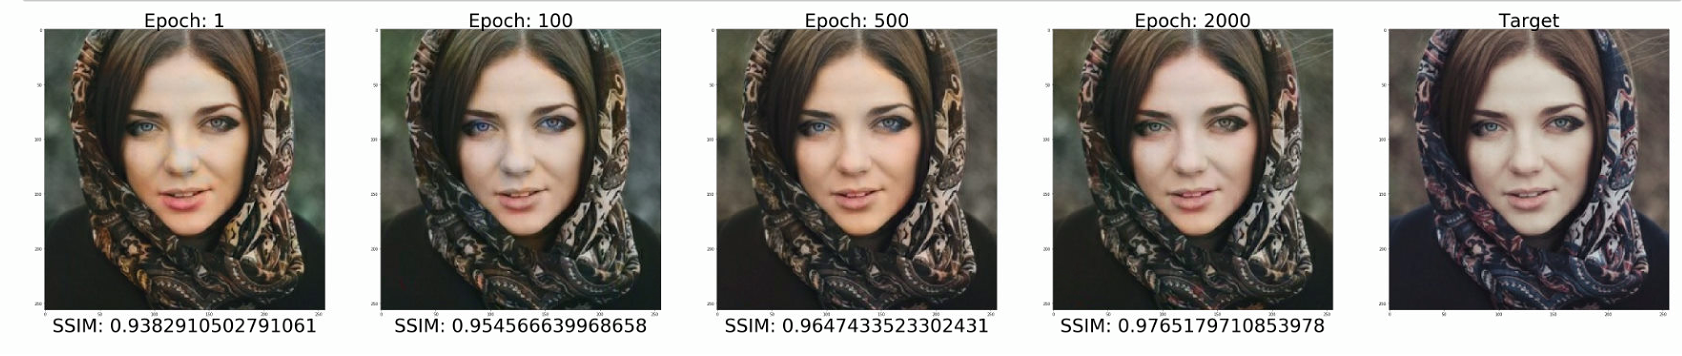 Coloring Grayscale Images Using Conditional Deep Convolutional GANs